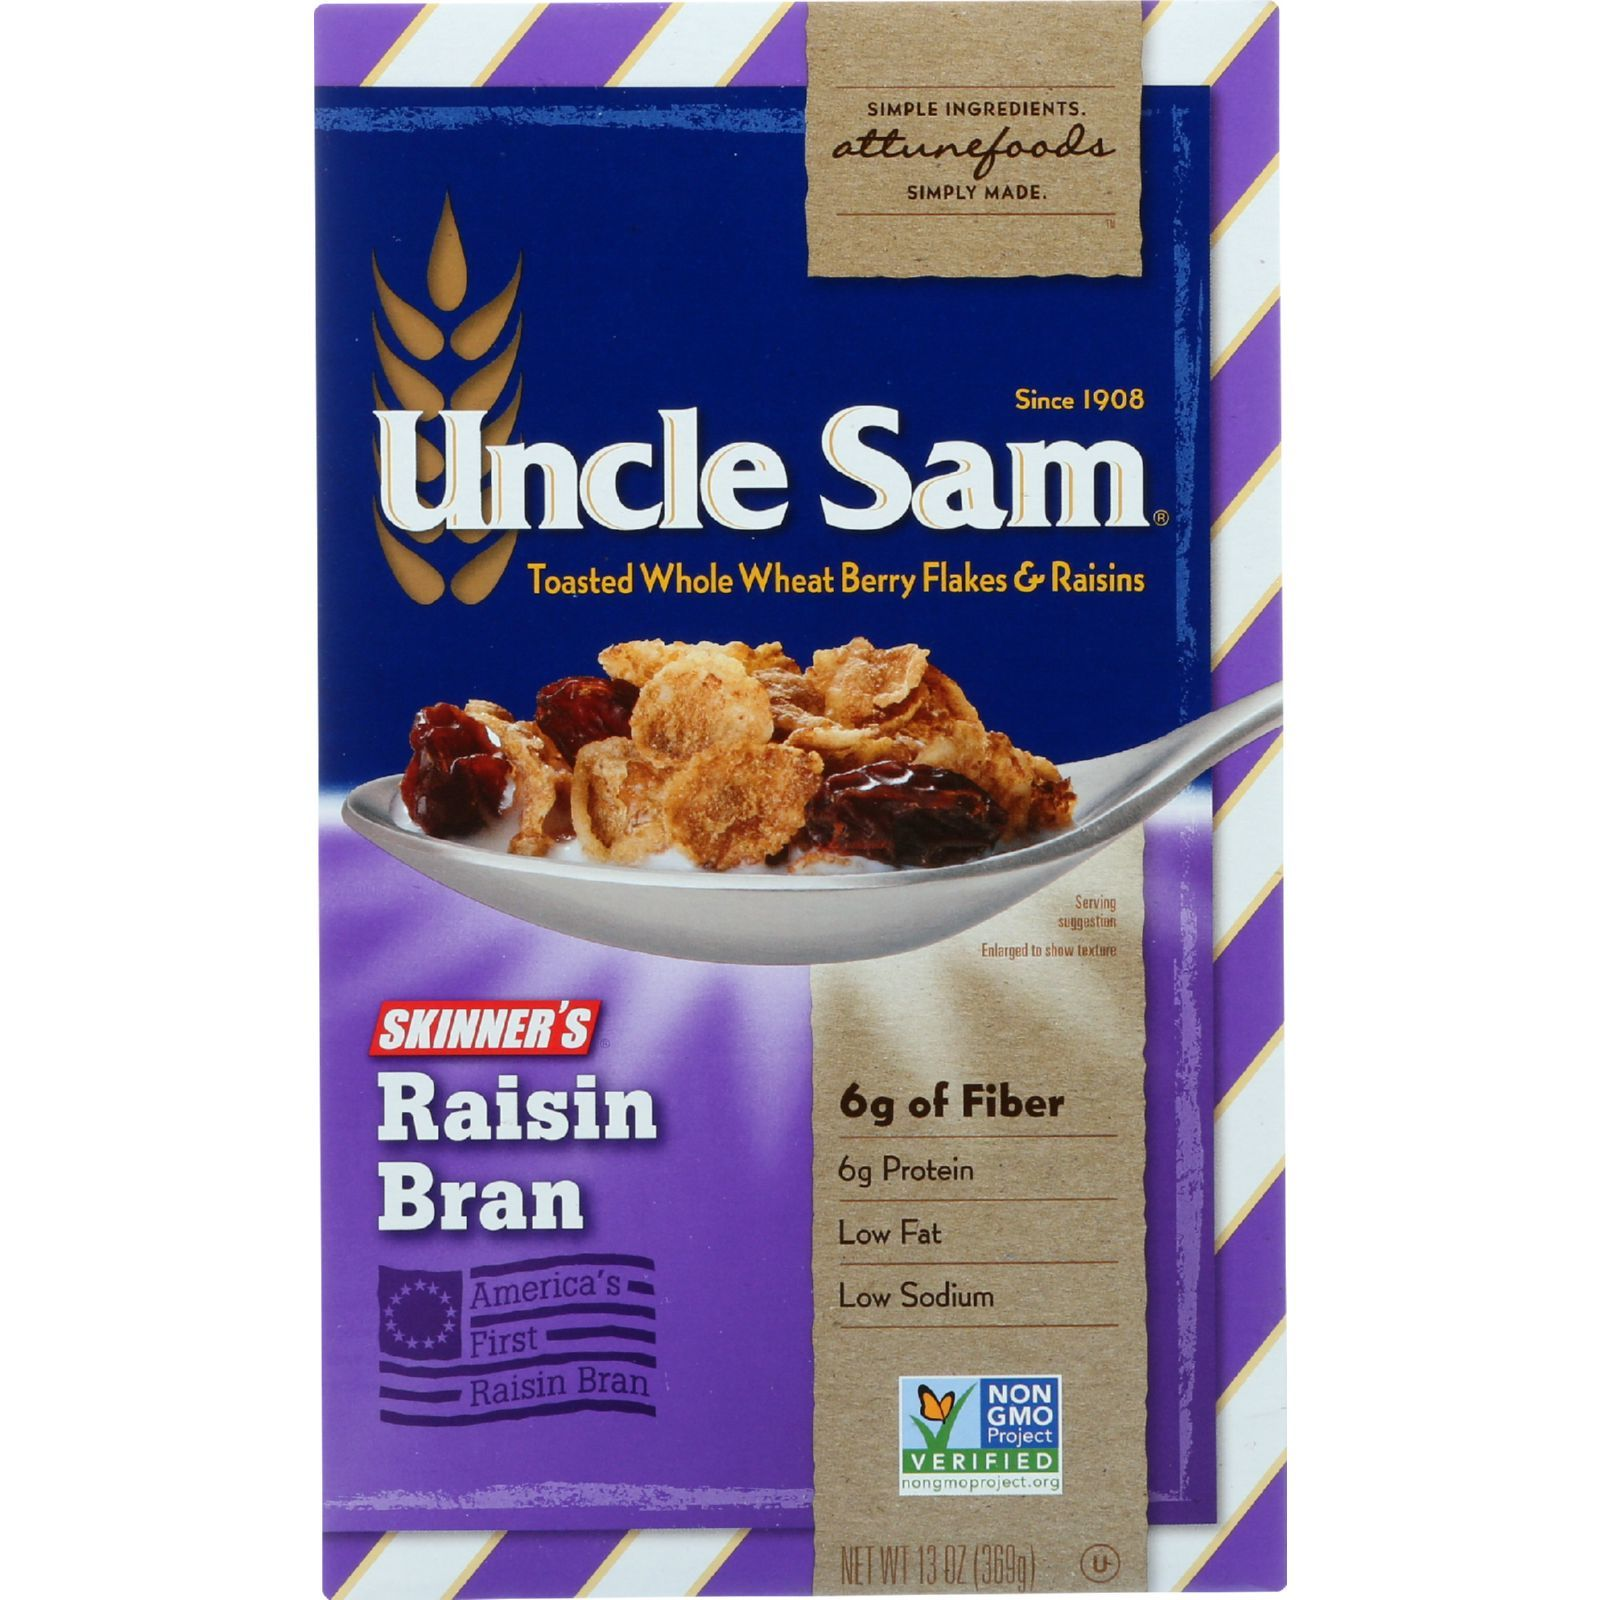 Uncle Sam Cereal Cereal - Skinners Raisin Bran - 13 oz - case of 12